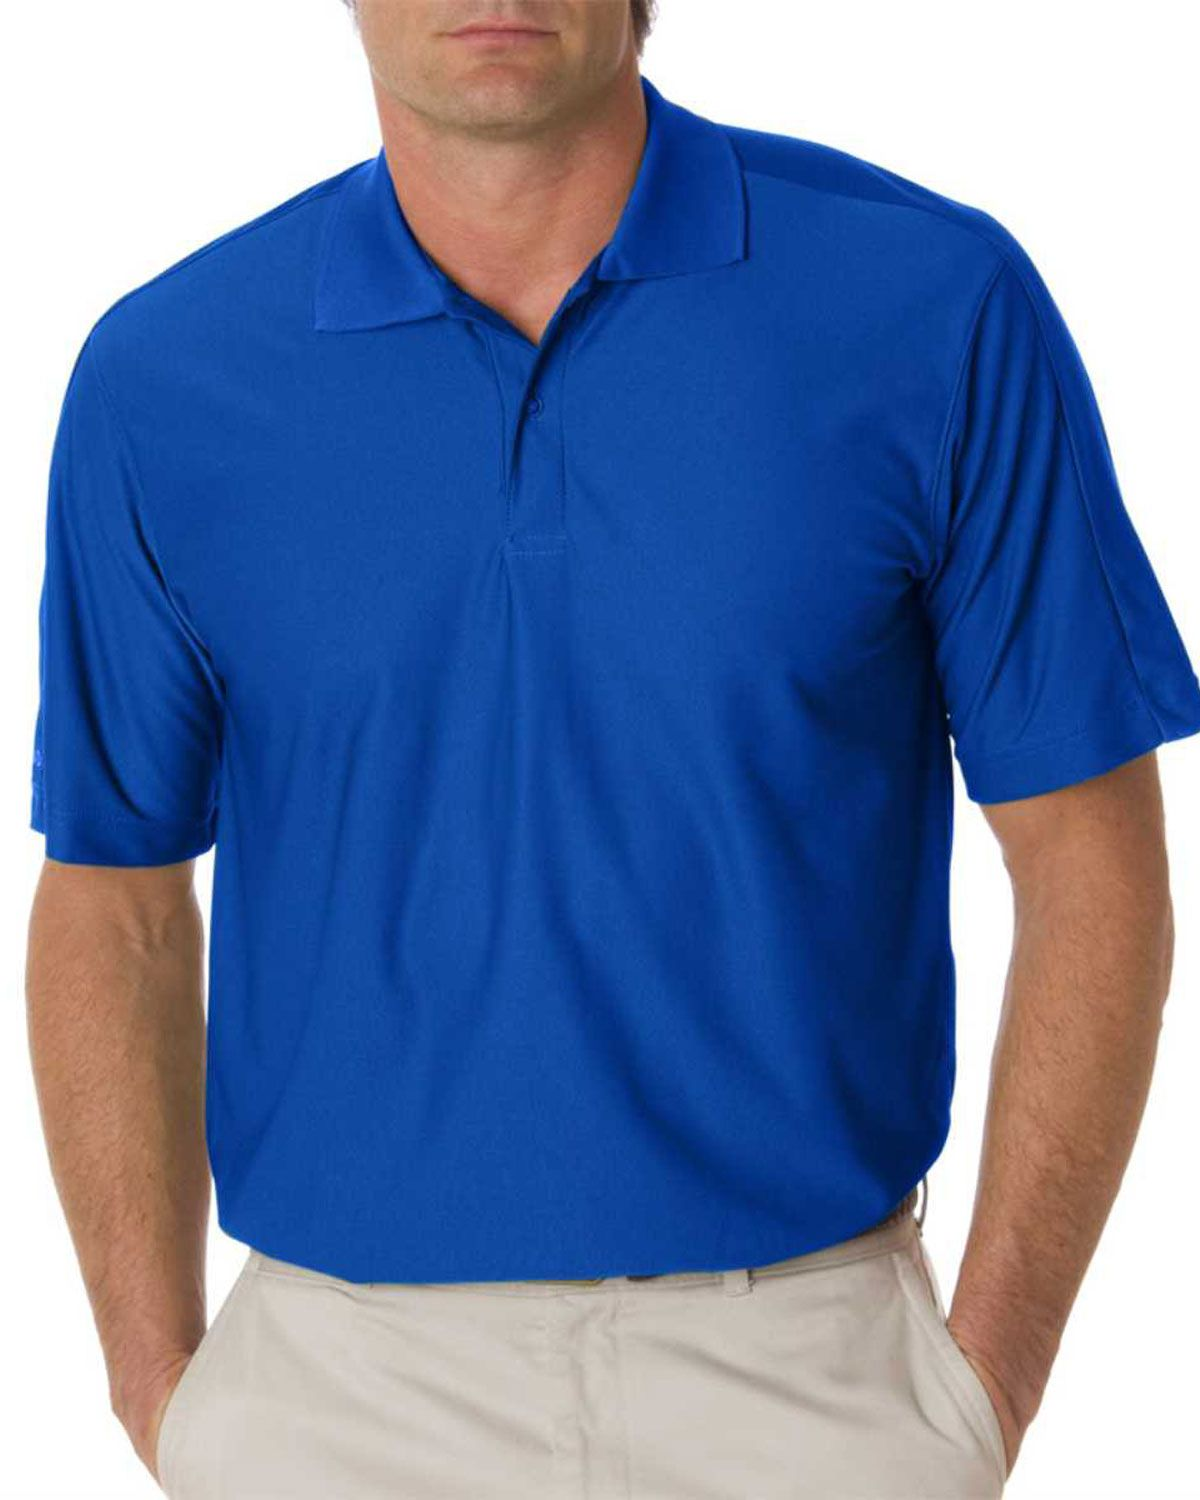 b6a0bae00f4cd Pique Polo - Buy wholesale 100% polyester pique 5.75-oz. Izod adult  performance…